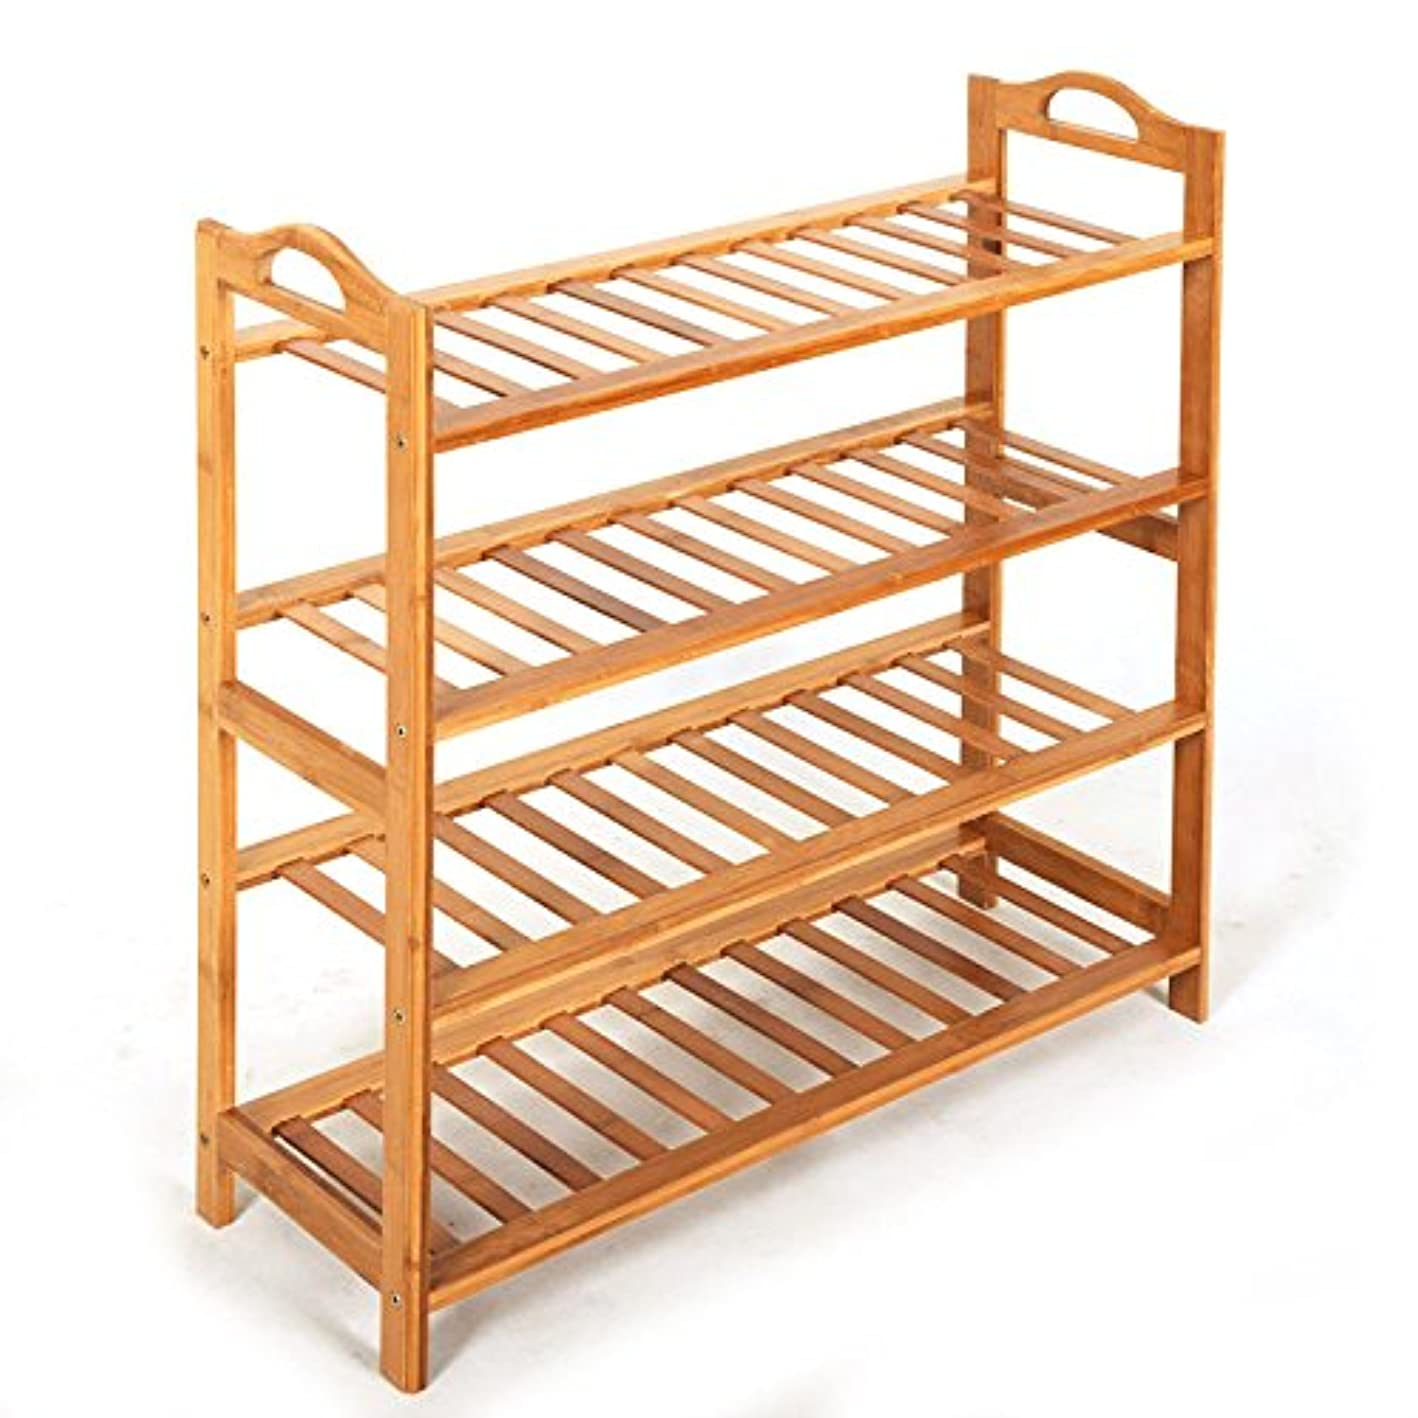 Azadx Bamboo Shoe Rack, 4-Tier Entryway/Balcony Free Standing Shoe Shelf Holder Storage Organizer Furniture